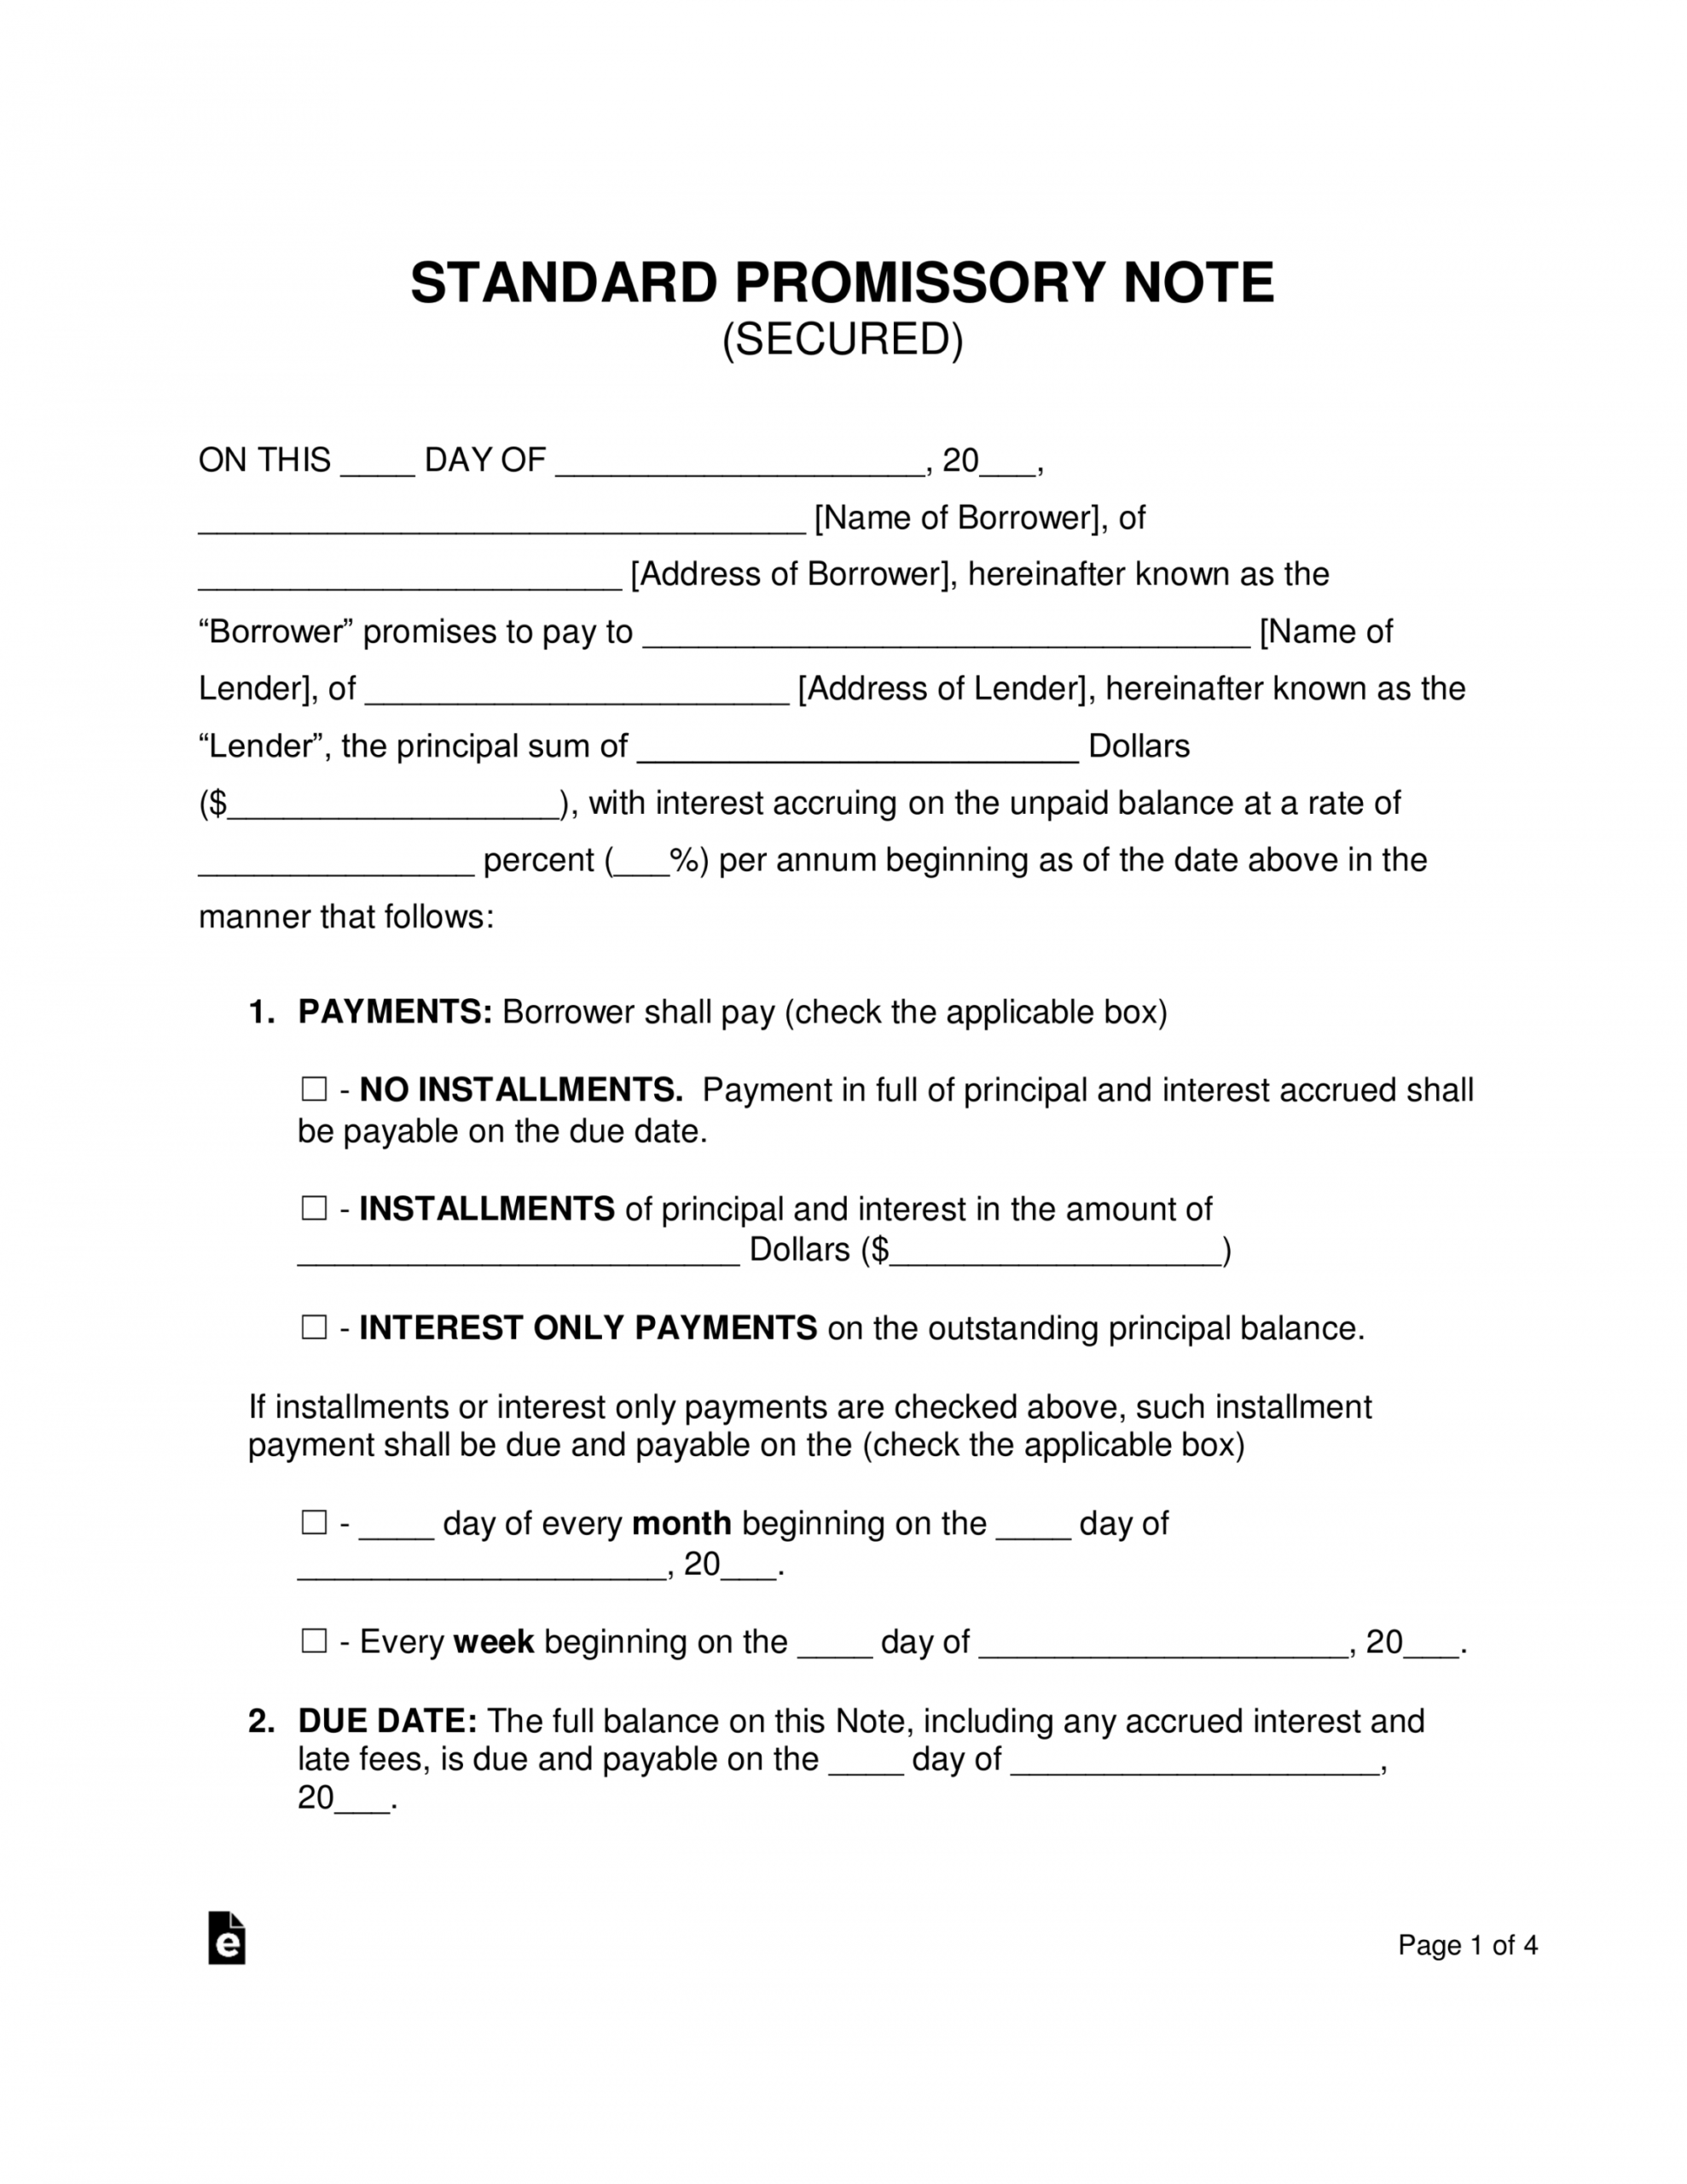 free free secured promissory note template  word  pdf  eforms standard promissory note template excel